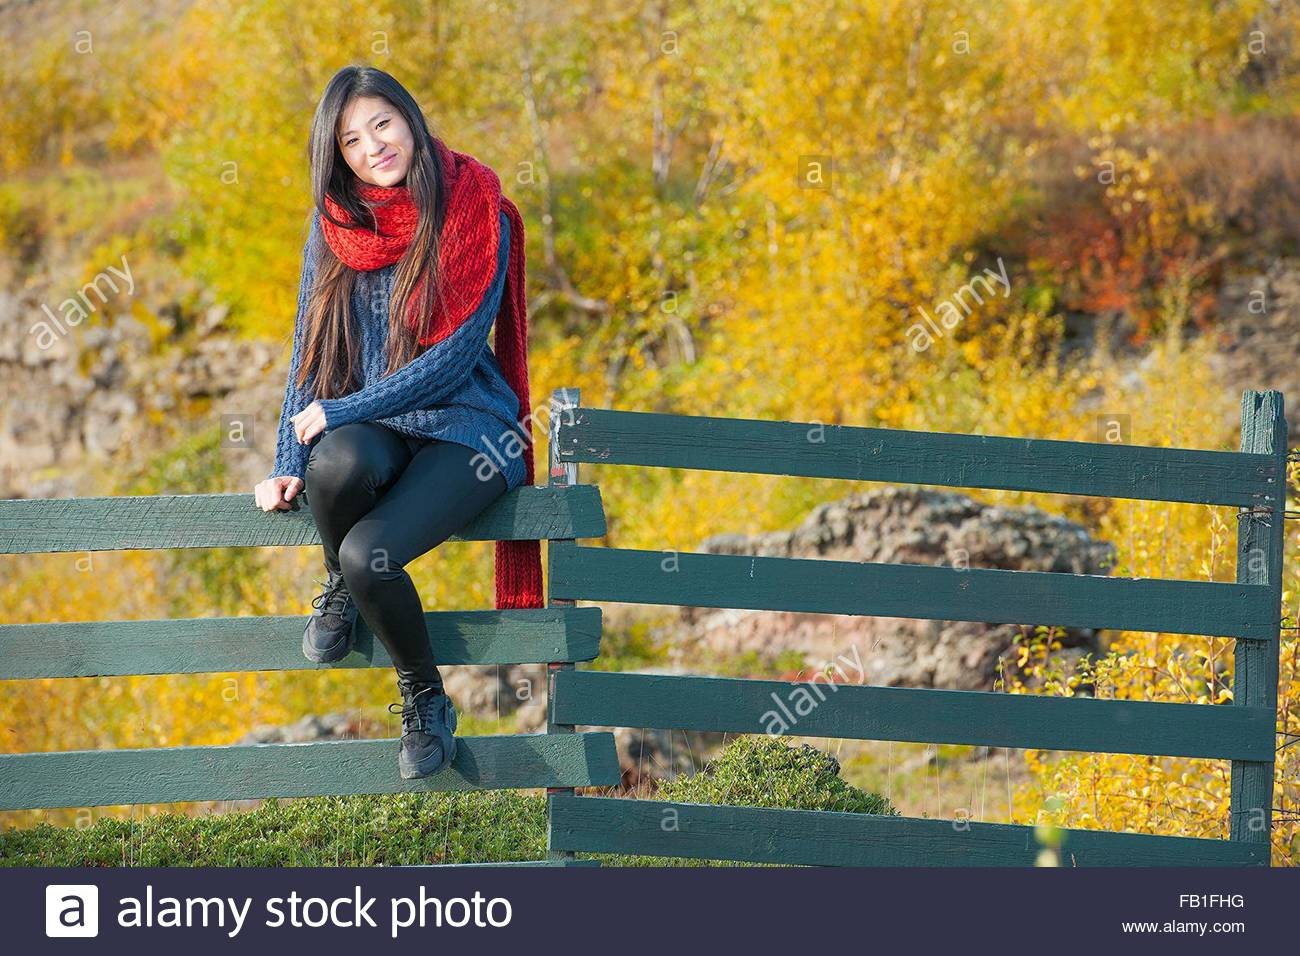 Mid adult woman wearing red wool scarf sitting on fence looking at camera smiling - Stock Image